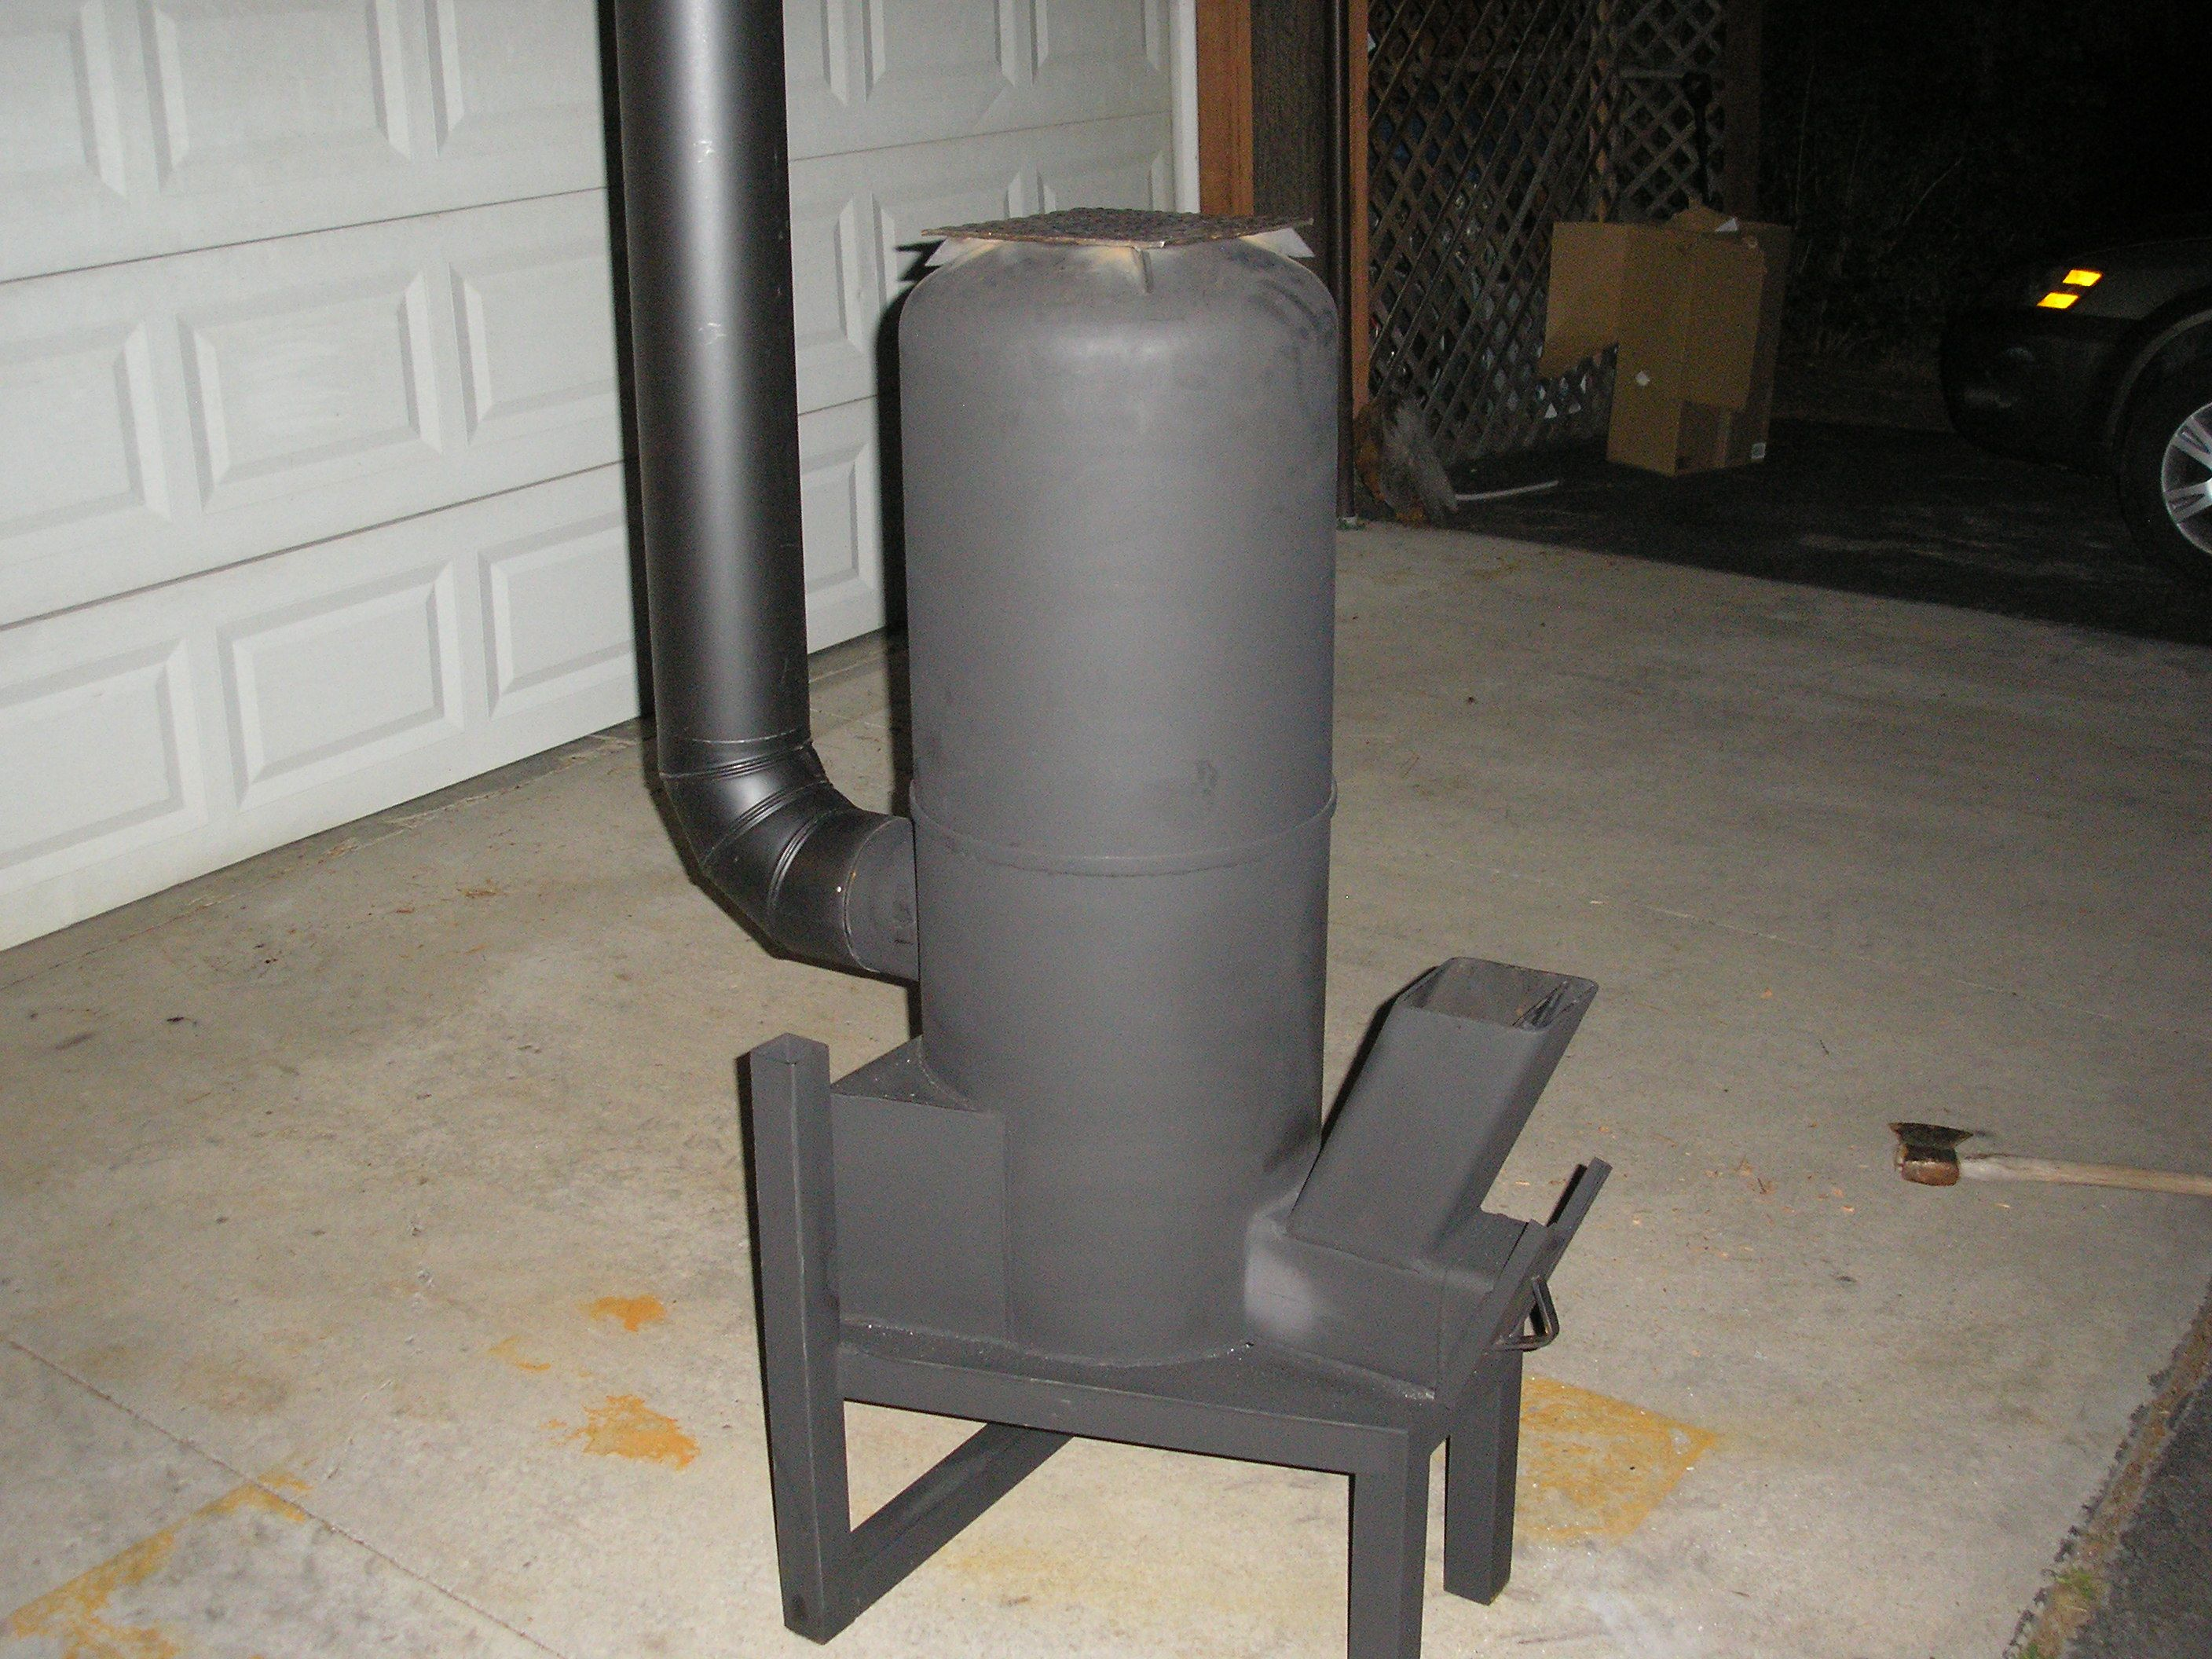 Diy Rocket Stove Heater With Hot Water And Hot Air Exchanger This Will Heat Your Domestic Hot Water H Rocket Stoves Diy Rocket Stove Rocket Stove Mass Heater